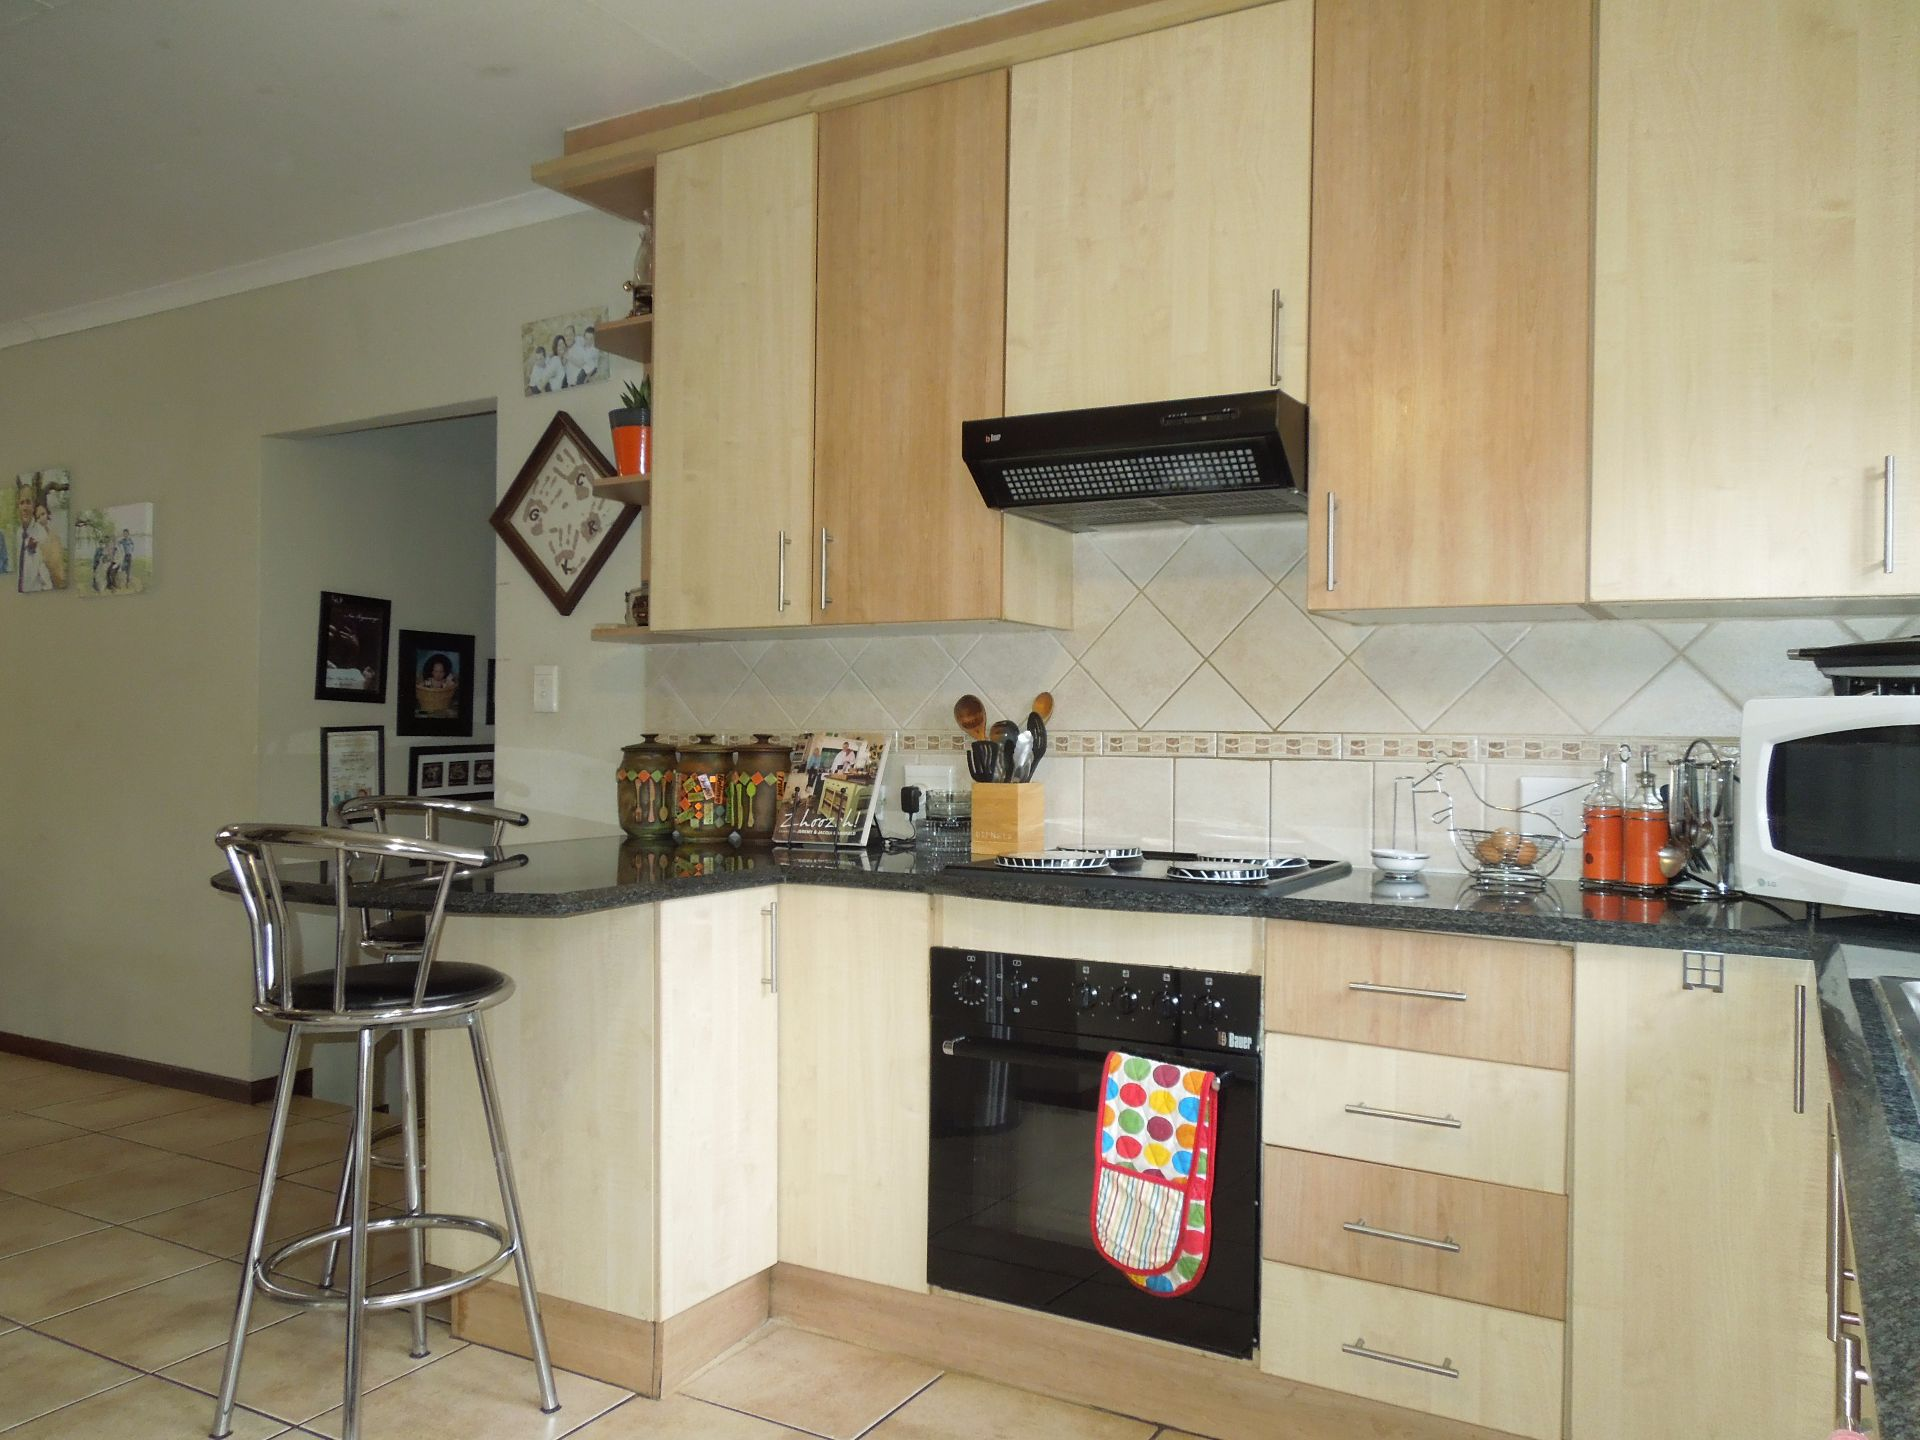 Chancliff A H property for sale. Ref No: 13536551. Picture no 5